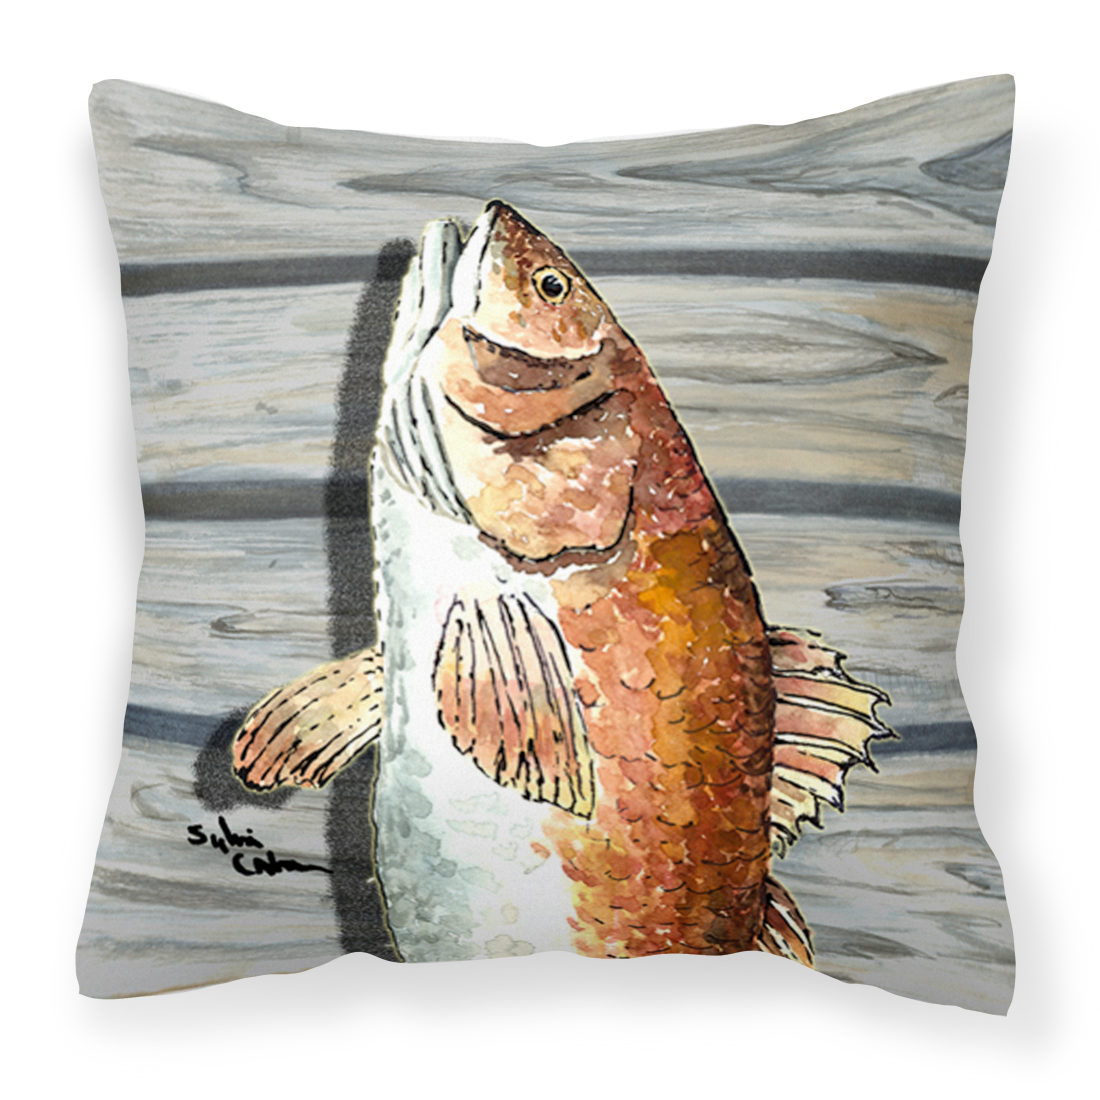 Red Fish Fabric Decorative Pillow 8489PW1414